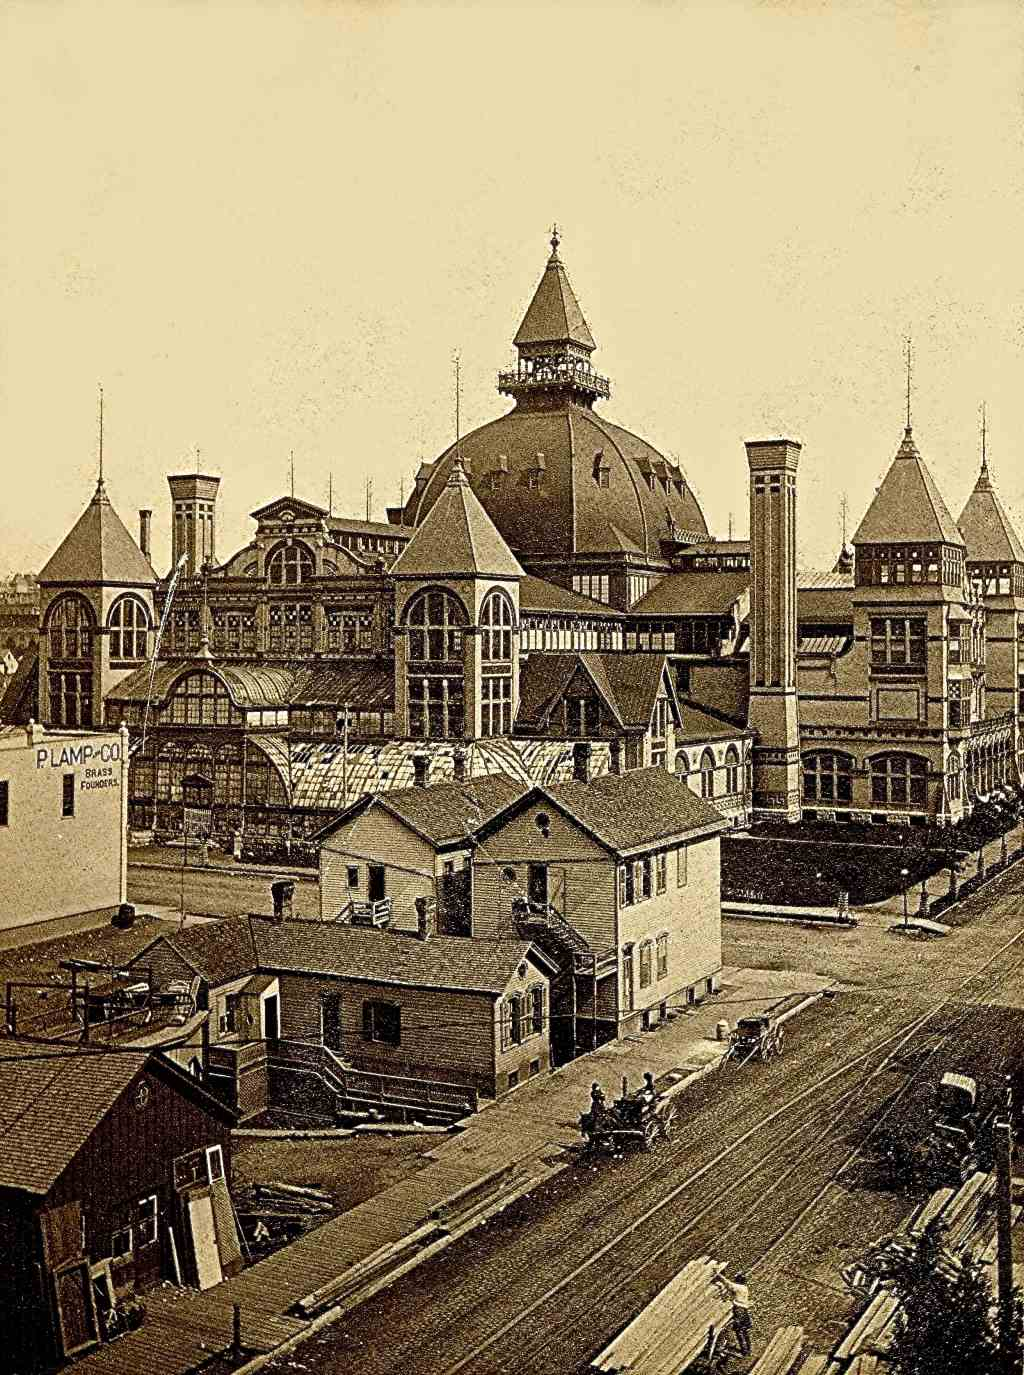 Milwaukee Industrial Exposition Building, 1880s. Image courtesy of Jeff Beutner.